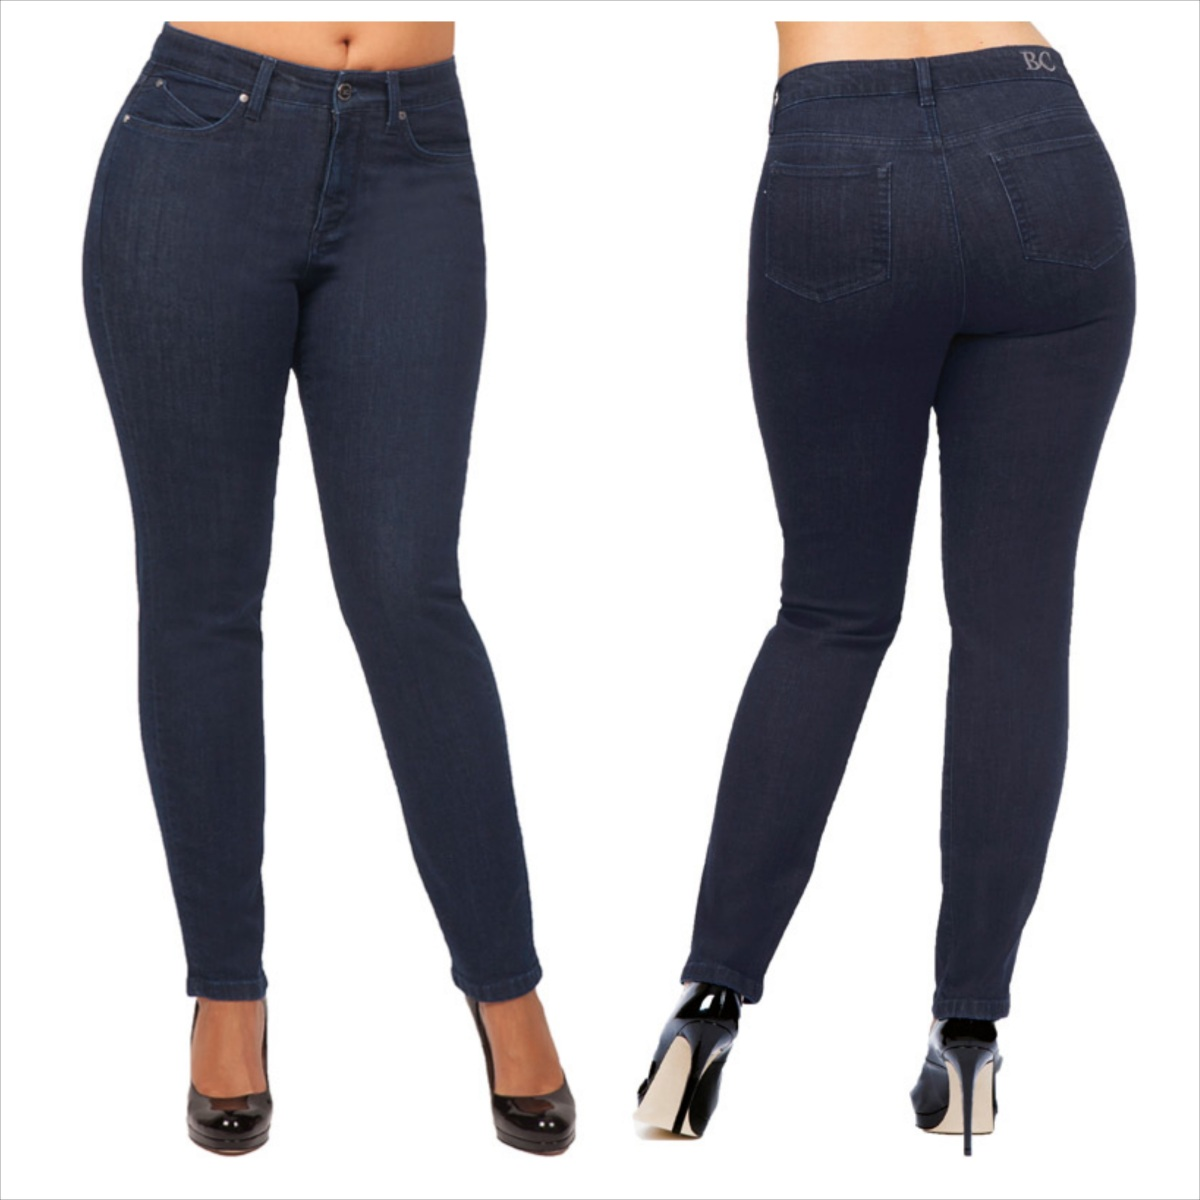 Beauty in Curves jeans